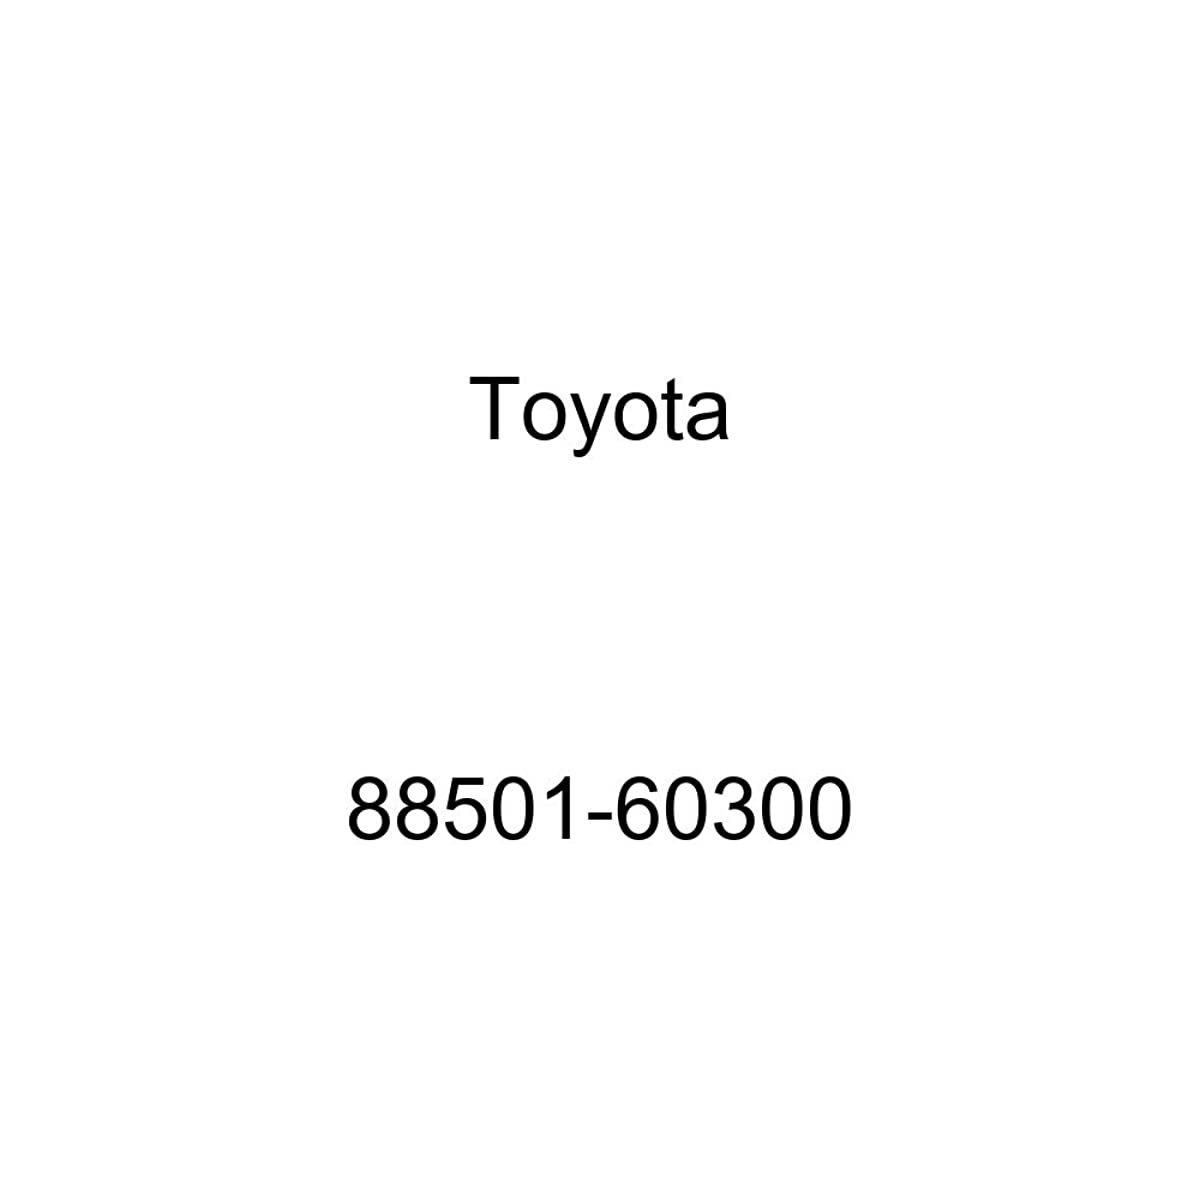 Toyota 88501-60300 Evaporator Sub Assembly (Cooler)